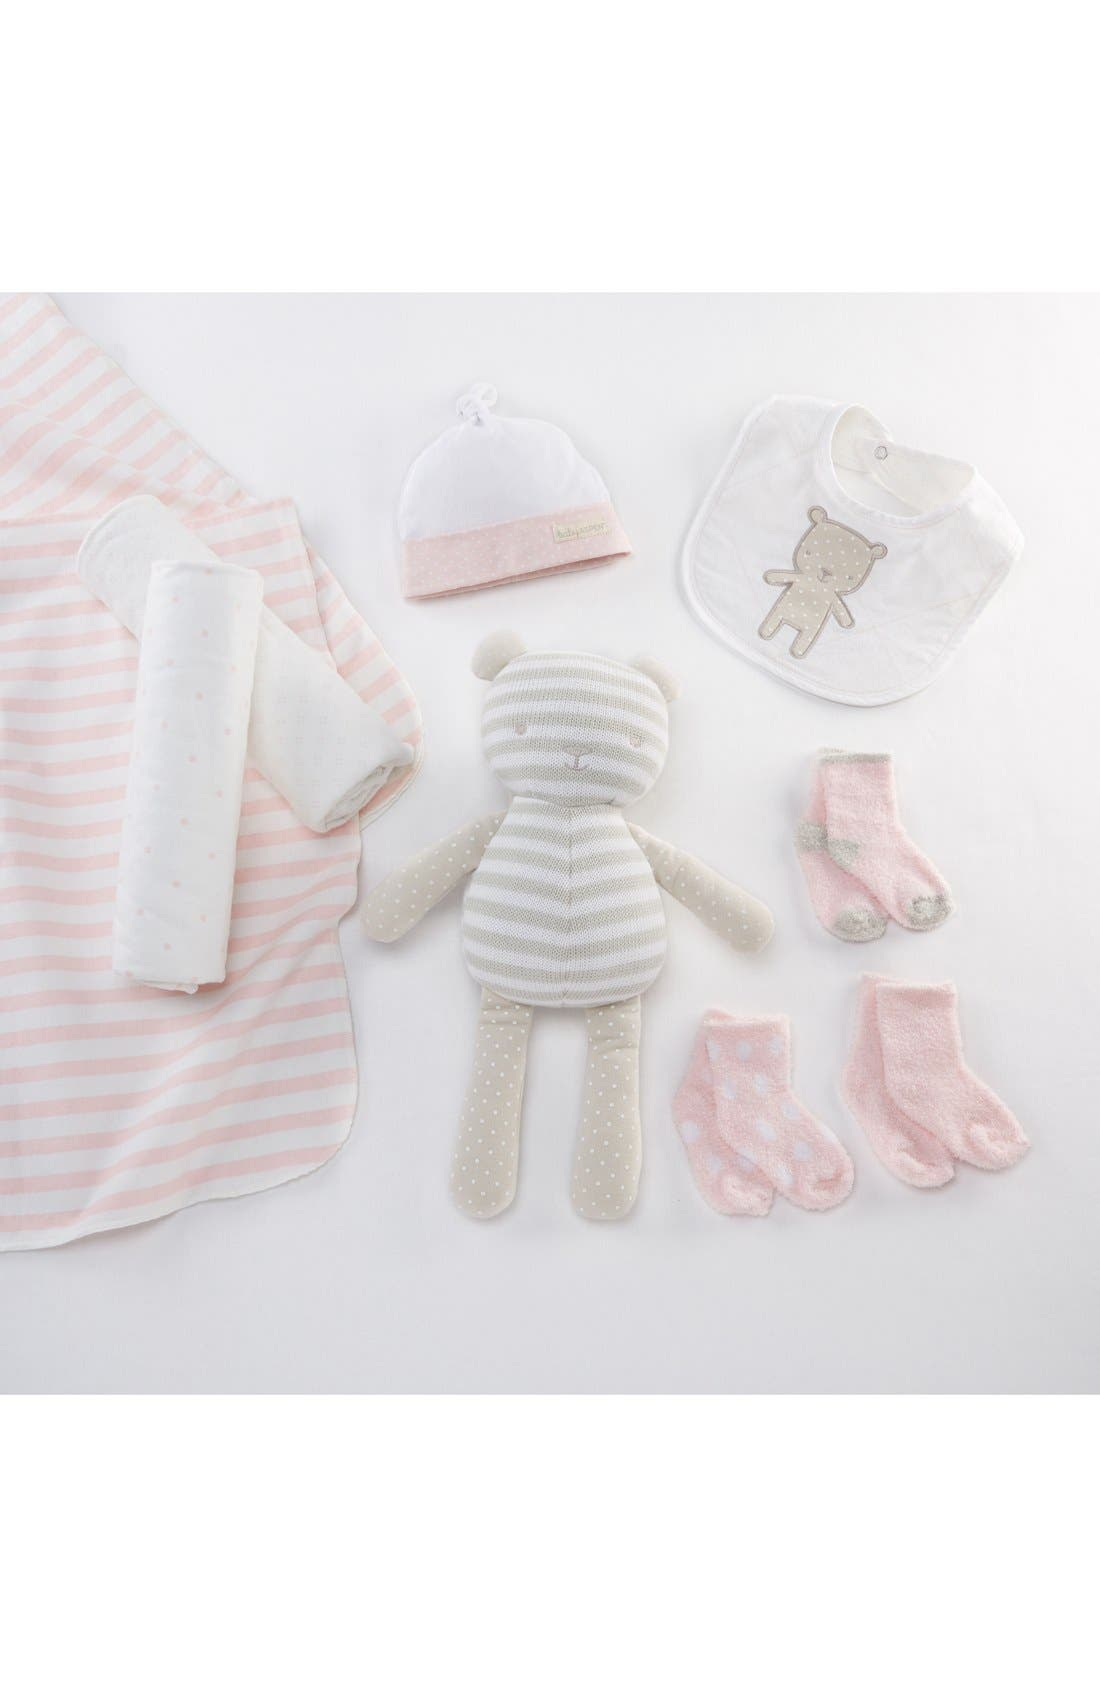 Beary Special 10-Piece Gift Set,                             Alternate thumbnail 2, color,                             Pink